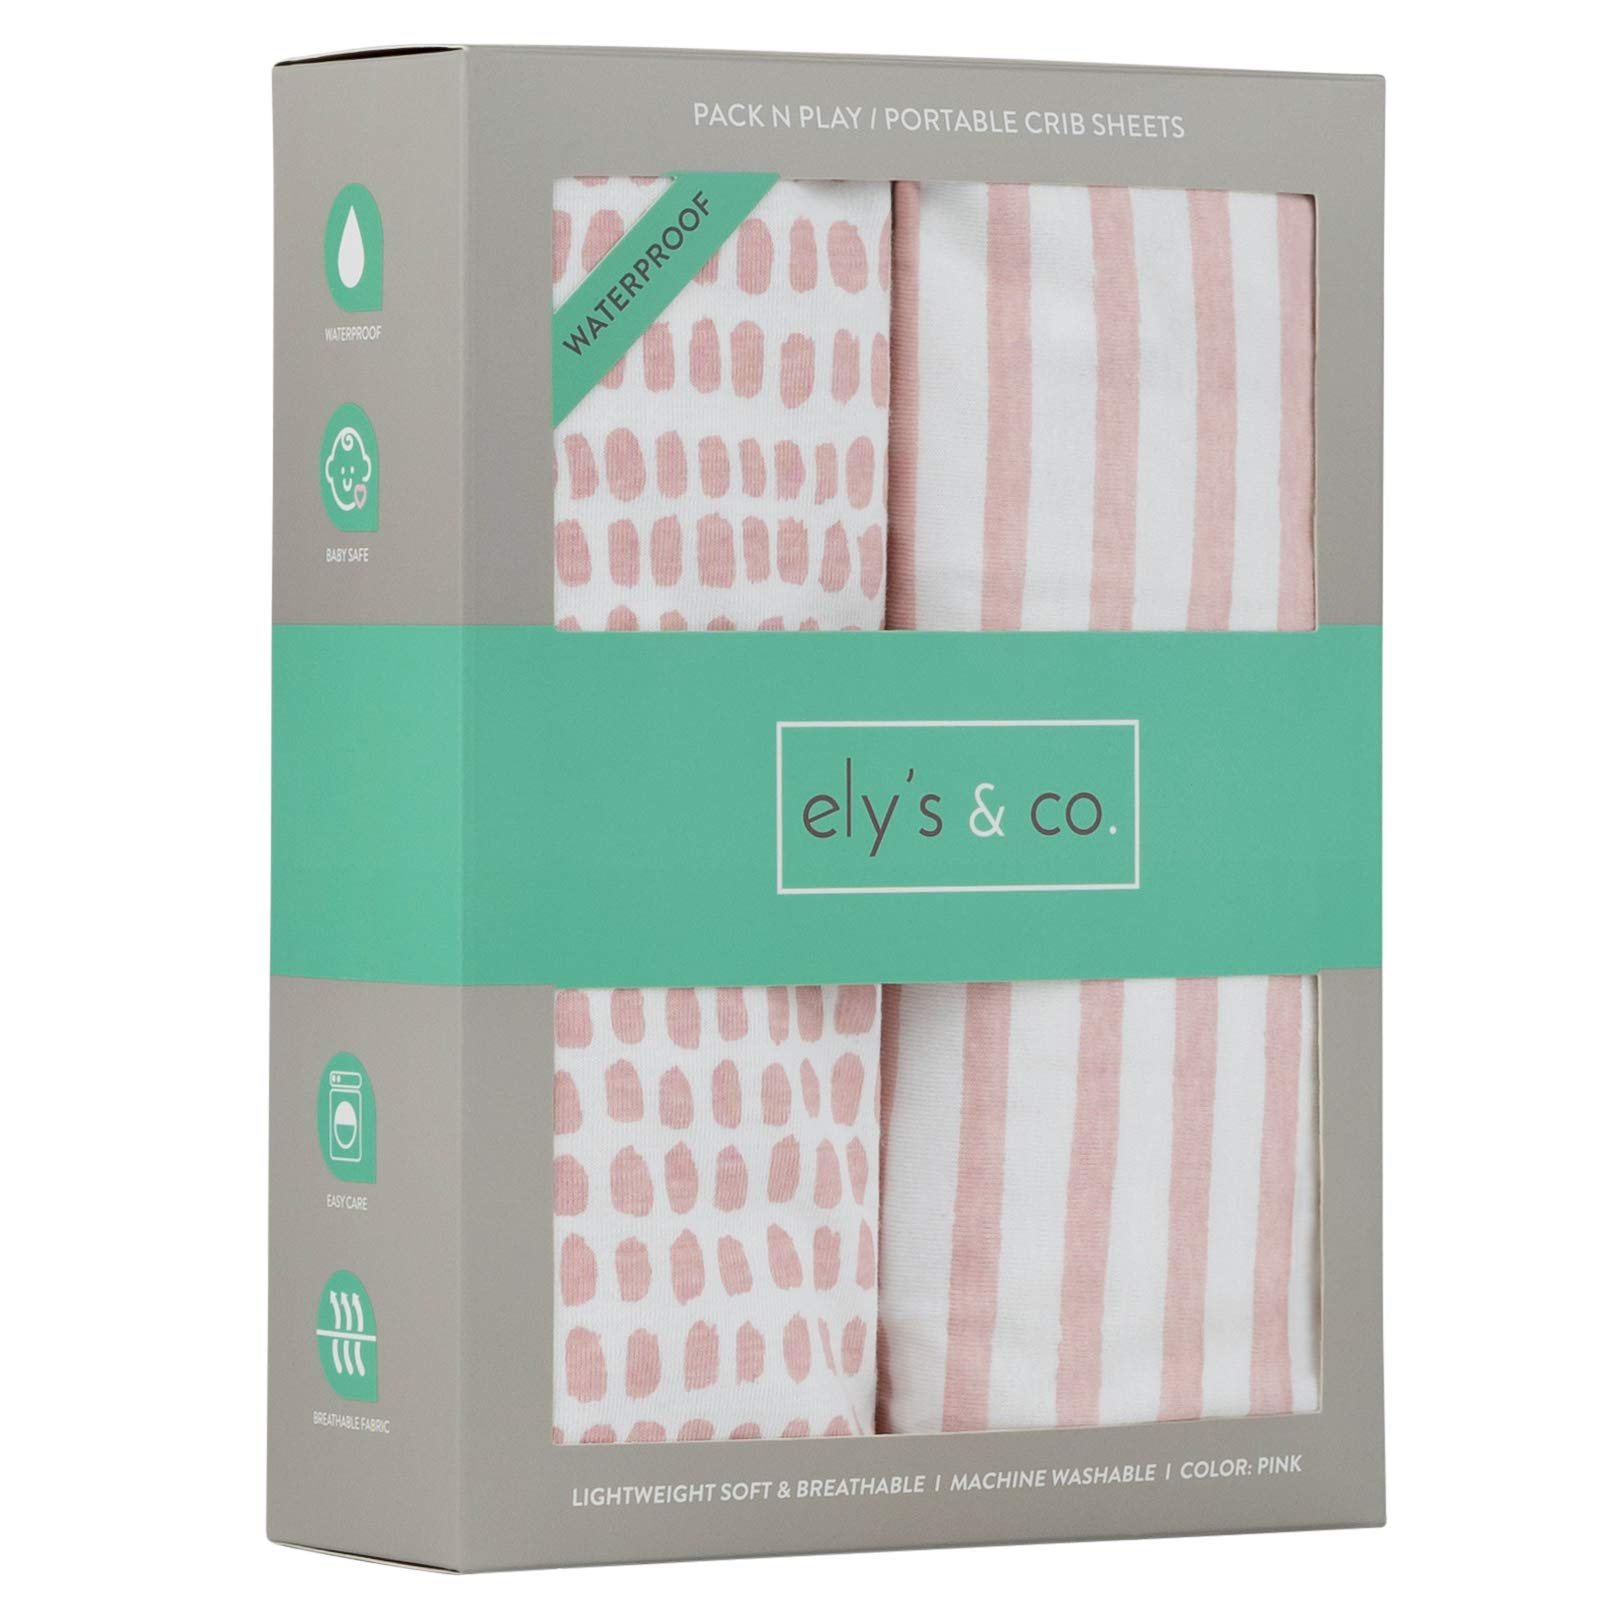 Waterproof Pack N Play/Mini Portable Crib Sheet with Mattress Pad Cover Protection I Mauve Pink Stripes and Splash by Ely's & Co. by Ely's & Co.